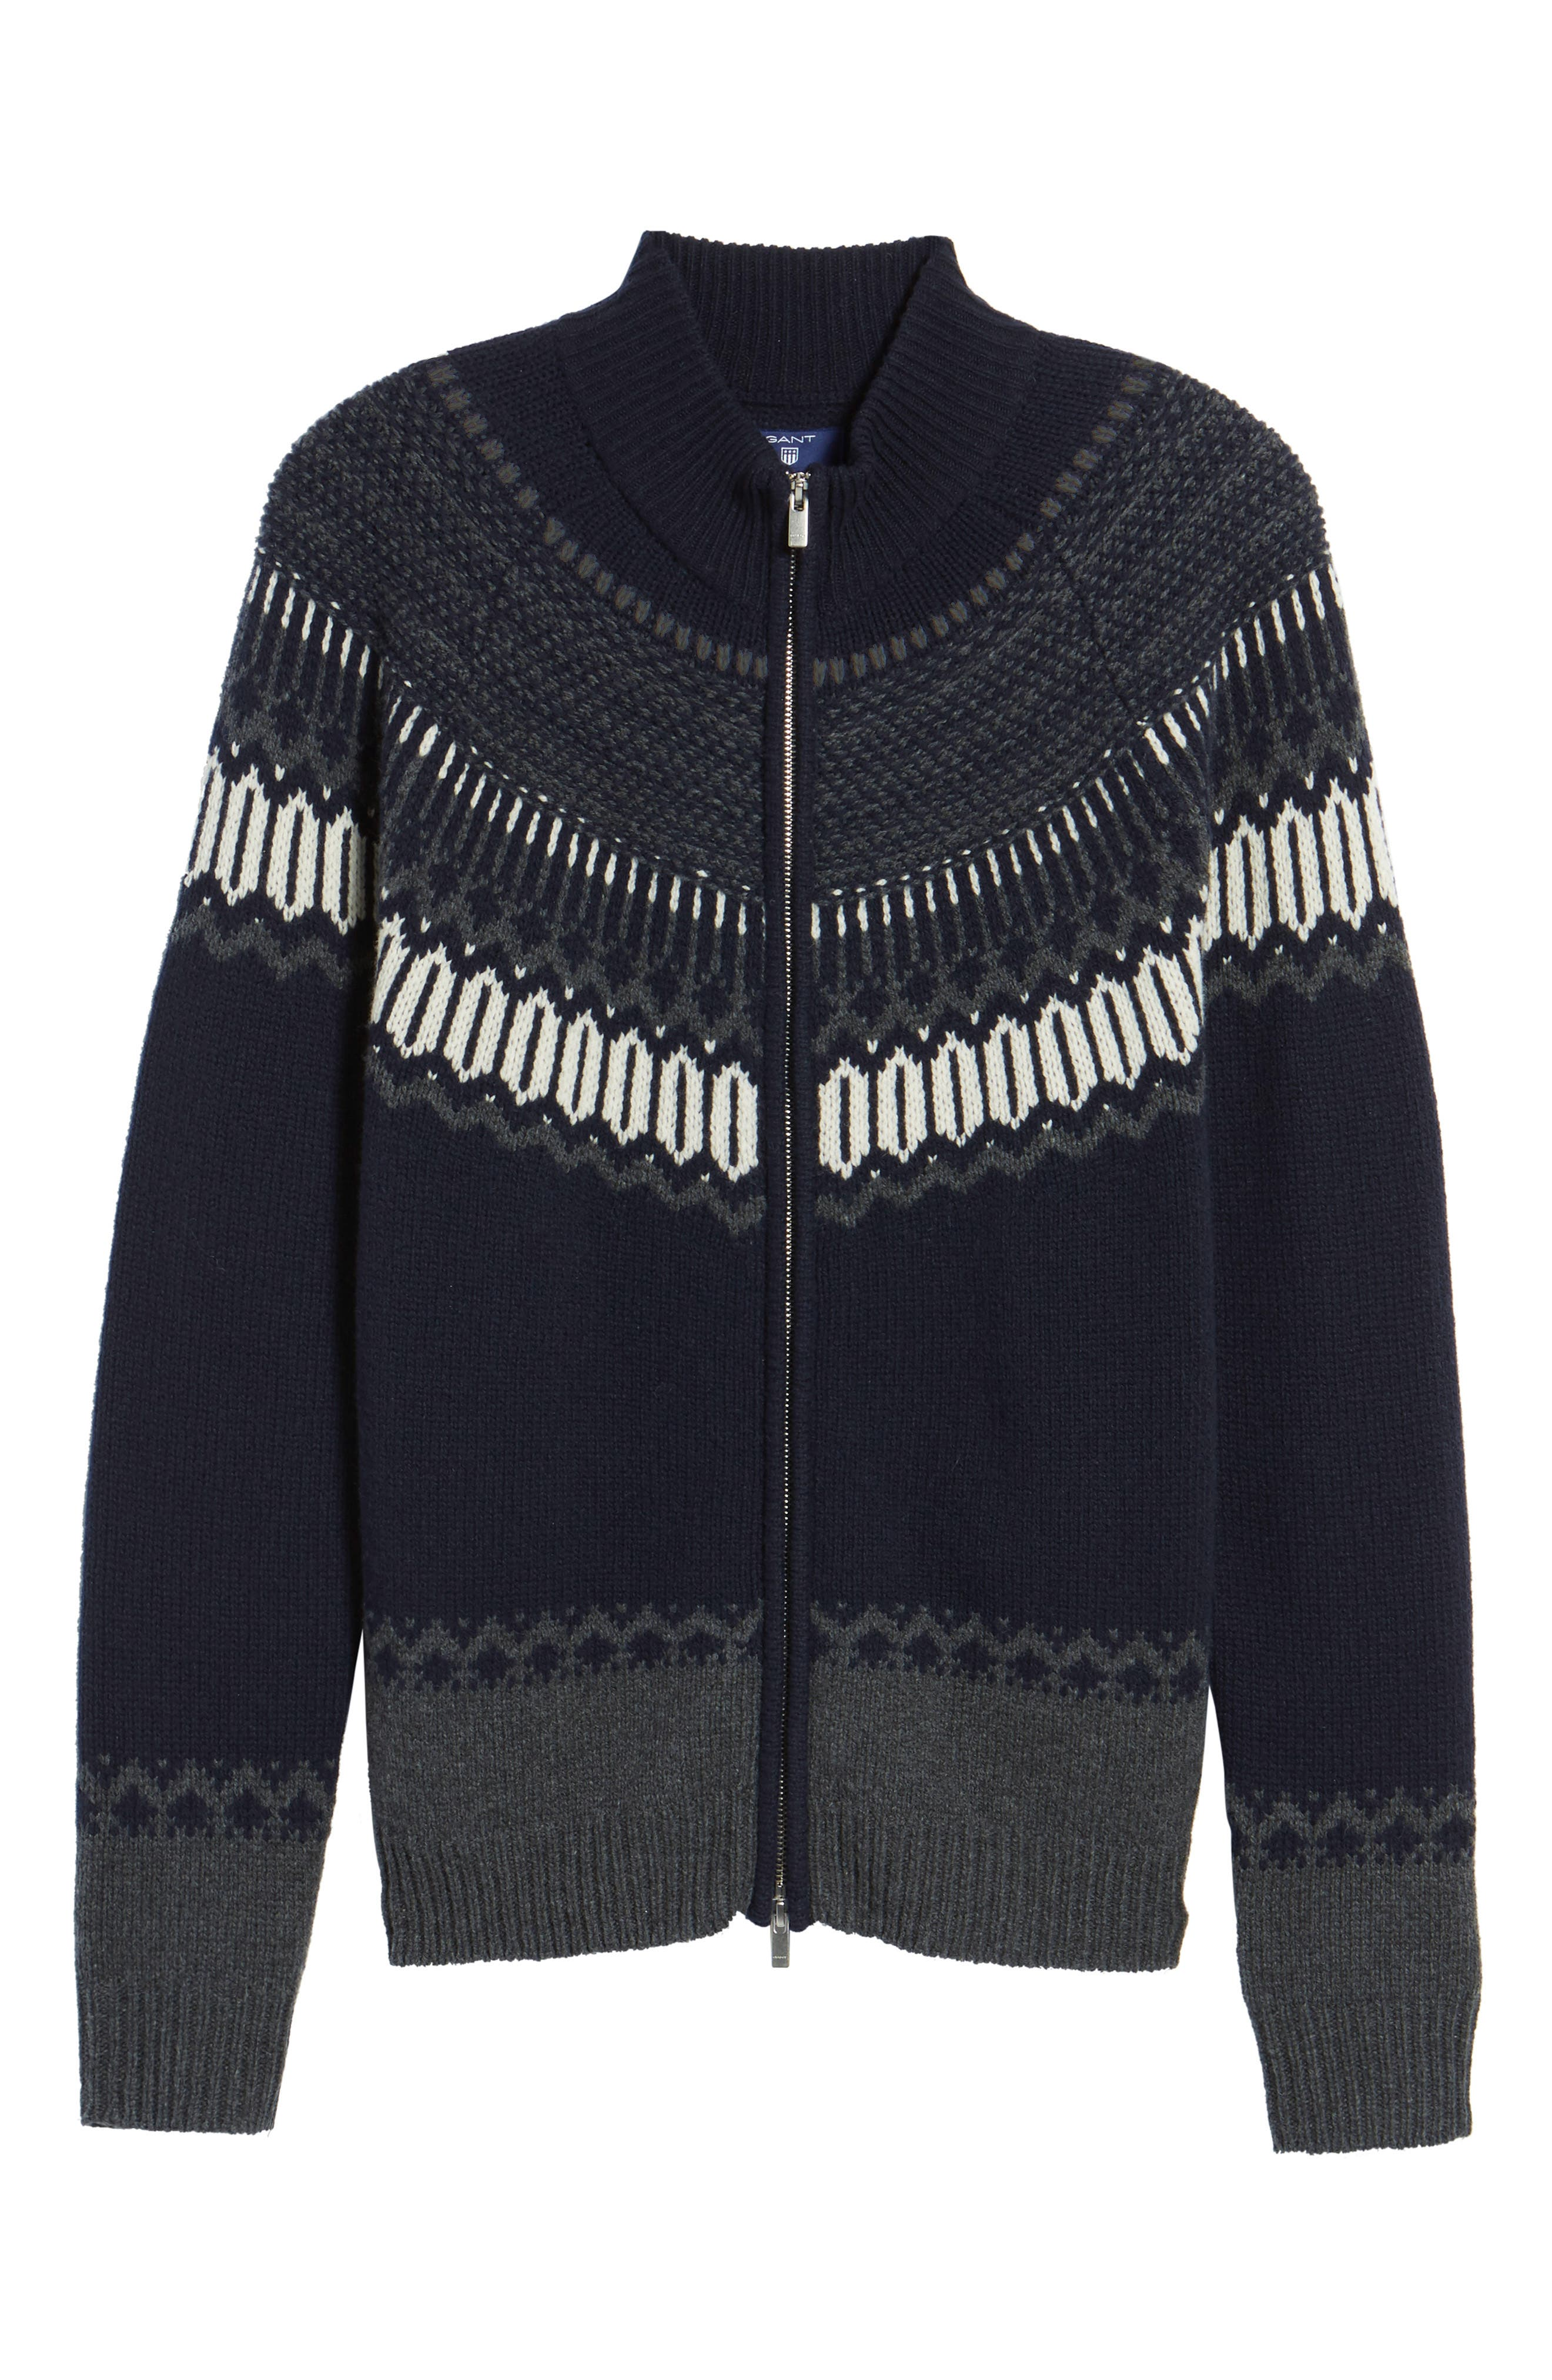 02 Lambswool & Cashmere Fair Isle Zip Front Cardigan,                             Alternate thumbnail 6, color,                             Navy